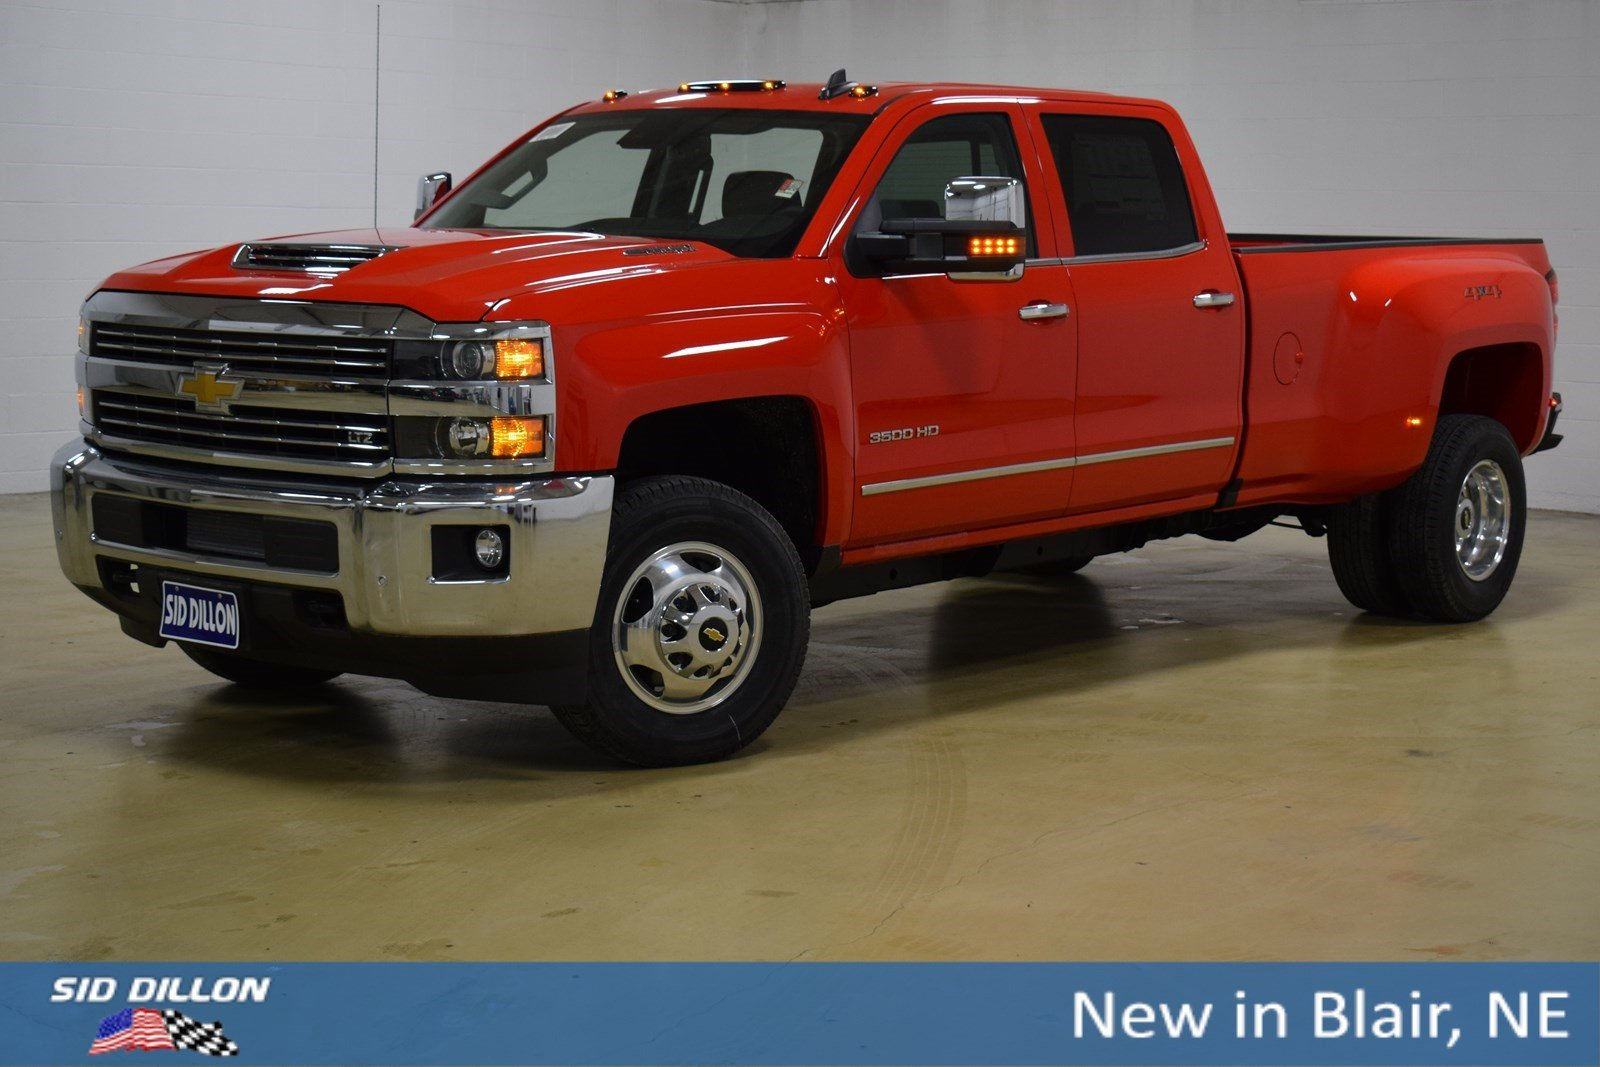 4140ddc706 New 2019 Chevrolet Silverado 3500HD LTZ Crew Cab in Blair  319212 ...